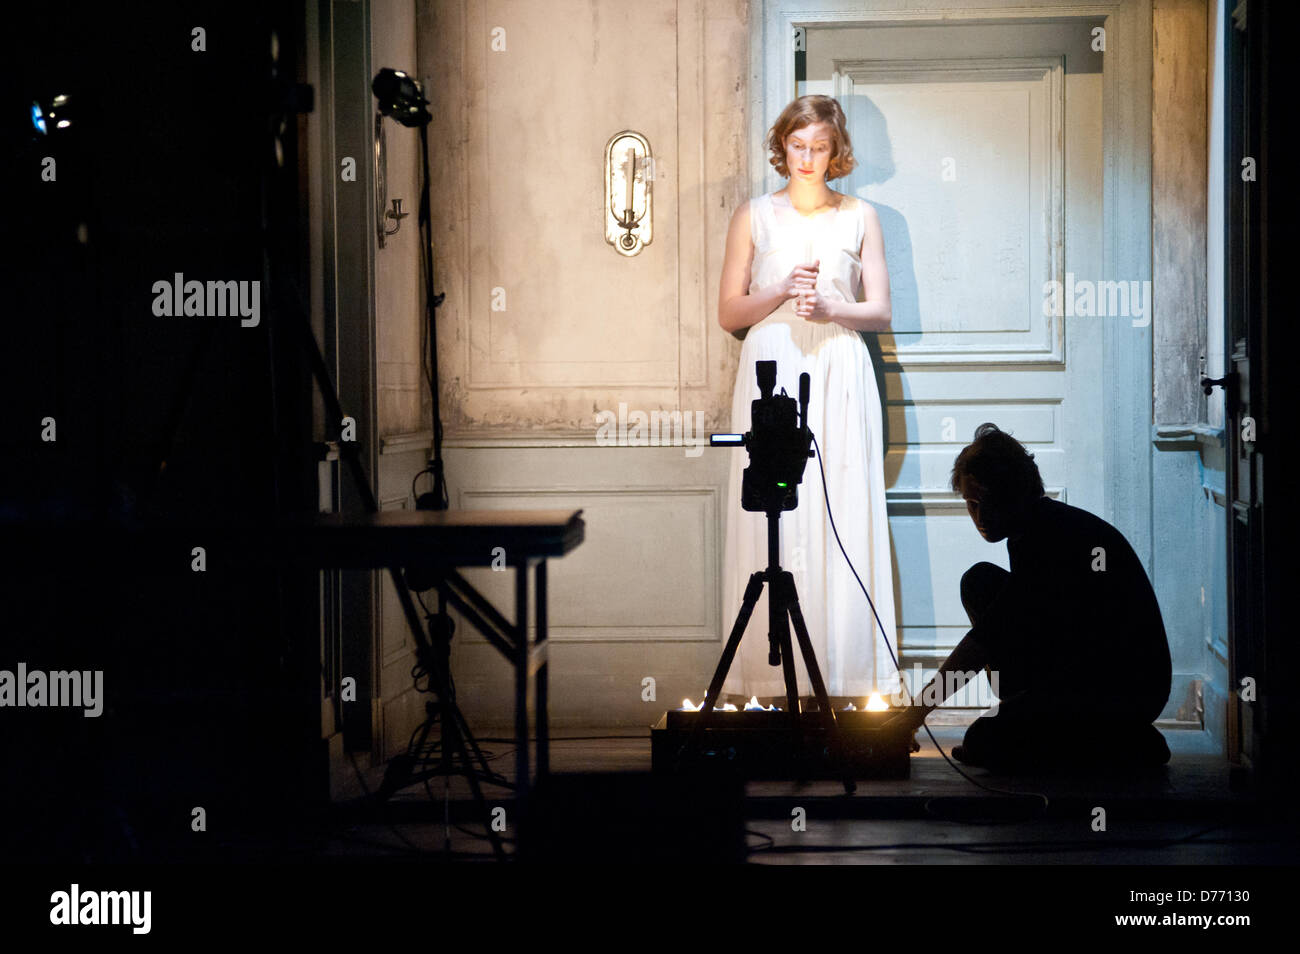 London, UK - 30 April 2013: Luise Wolfram interprets Miss Julie during the Fräulein Julie dress rehearsal at - Stock Image